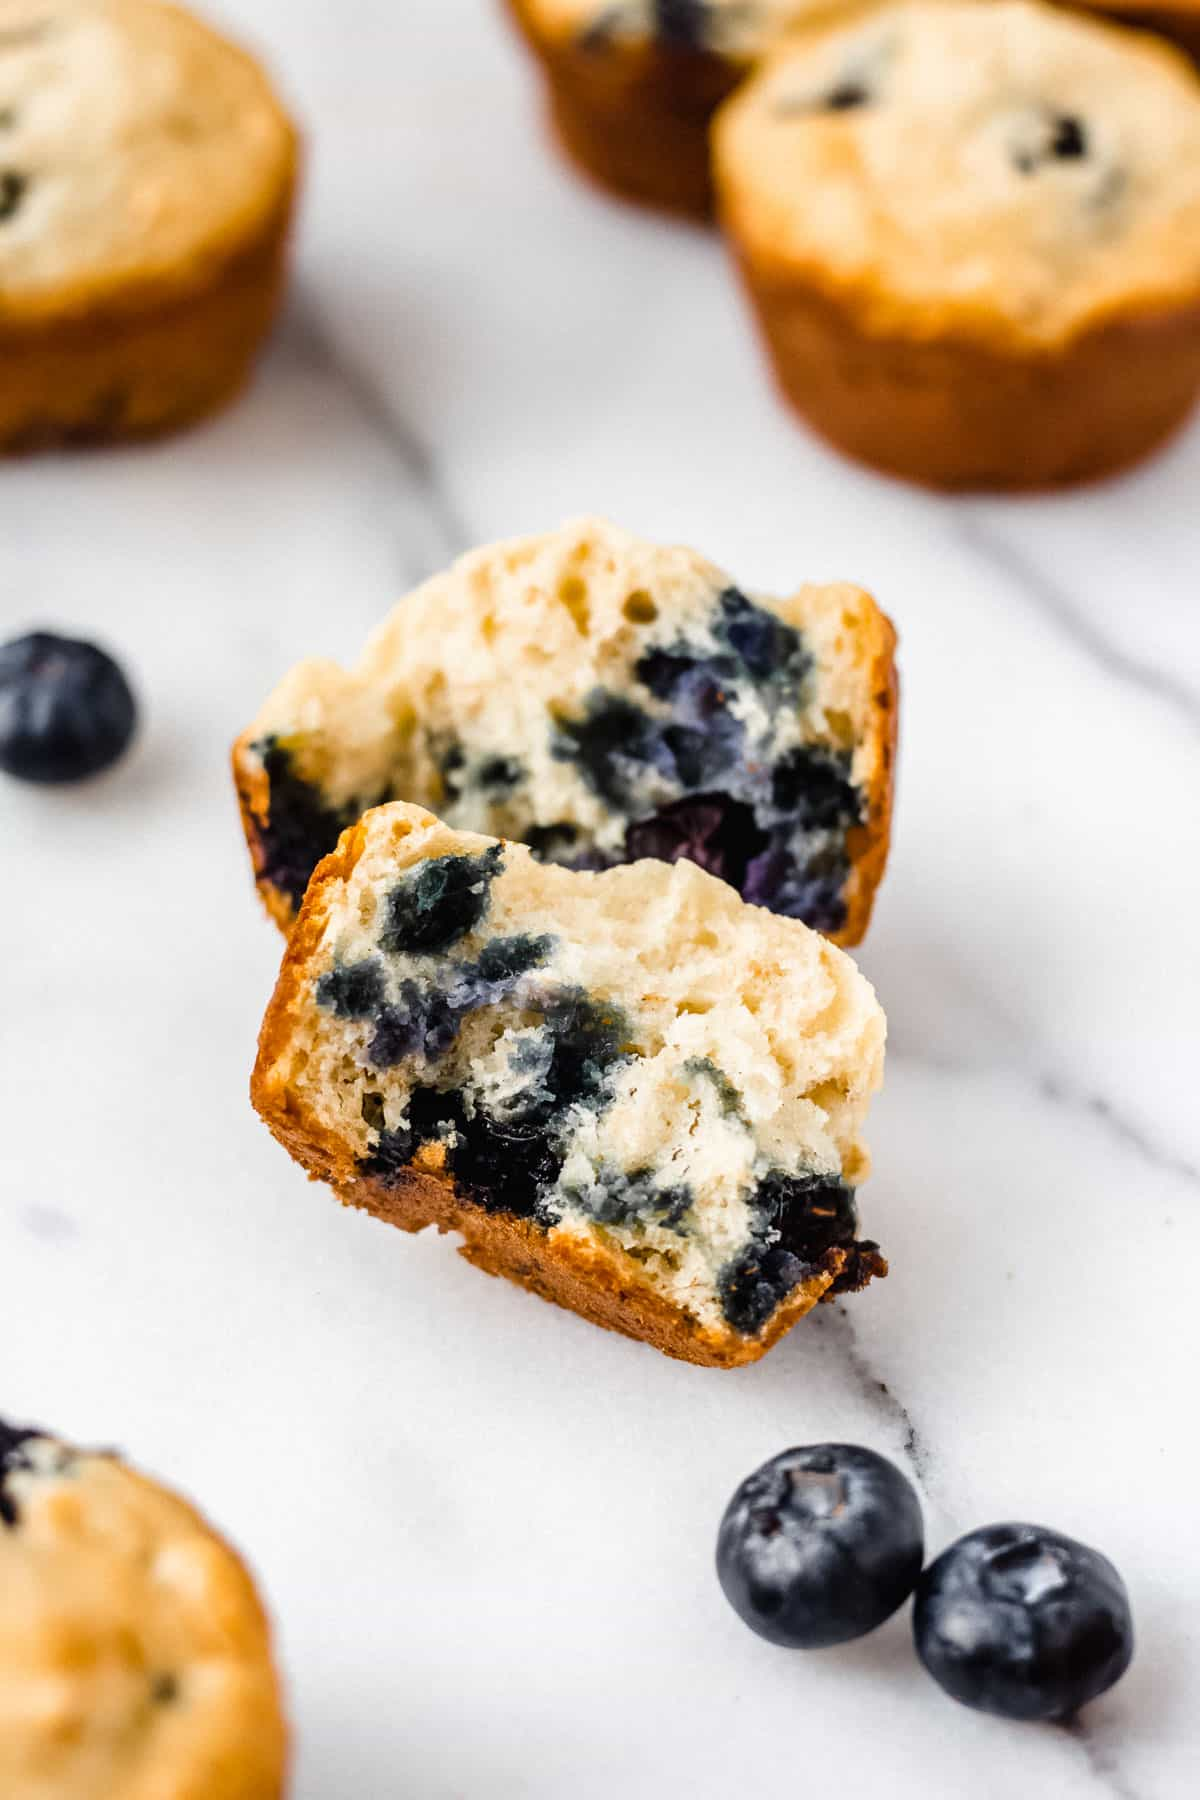 Blueberry muffin broken in half with other muffins and blueberries around it